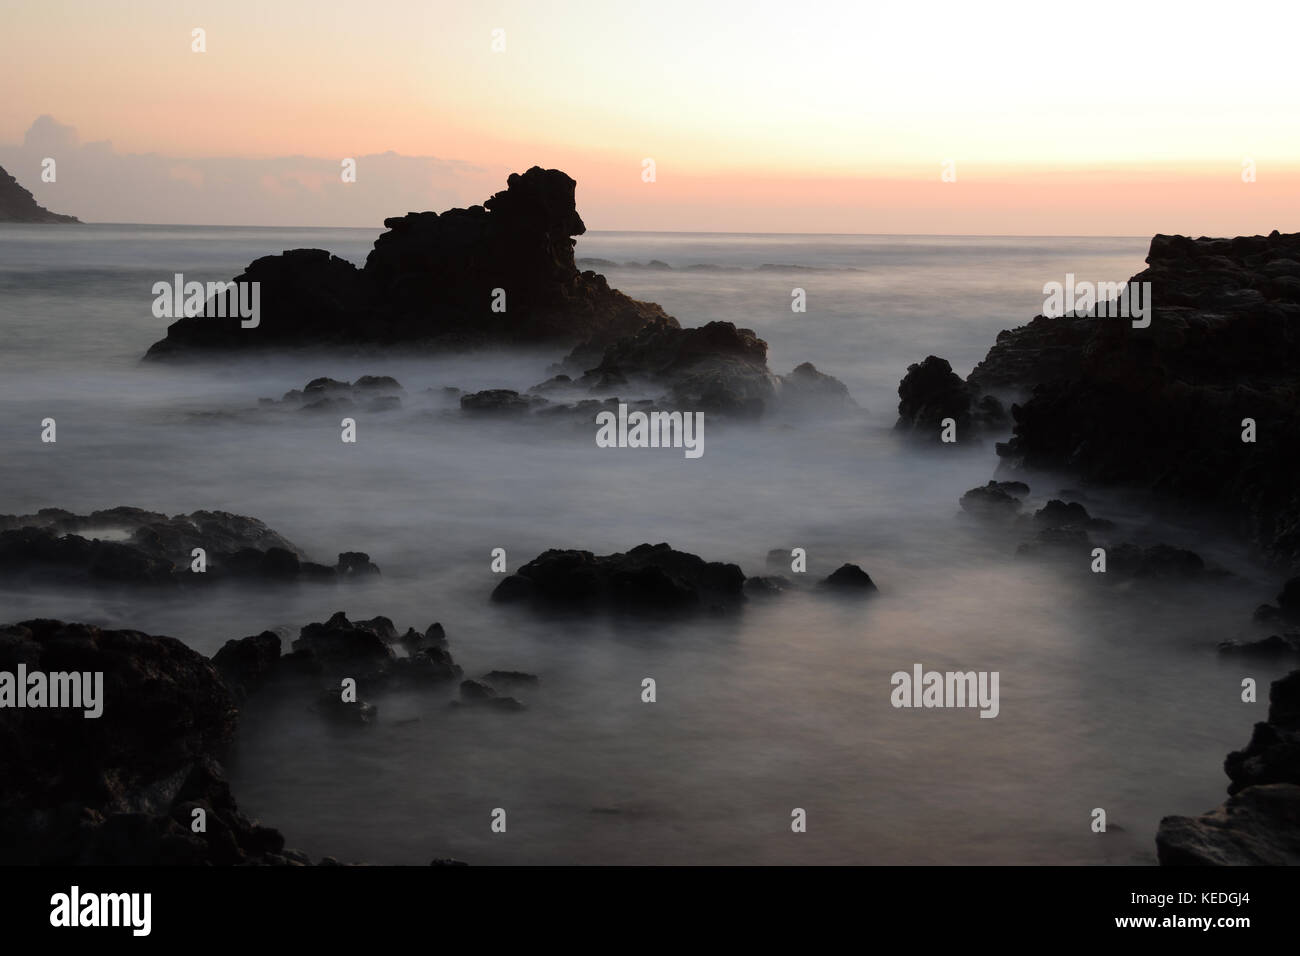 Sunrise photoshoot at Erma's Beach on the island of Oahu, Hawaii - Stock Image